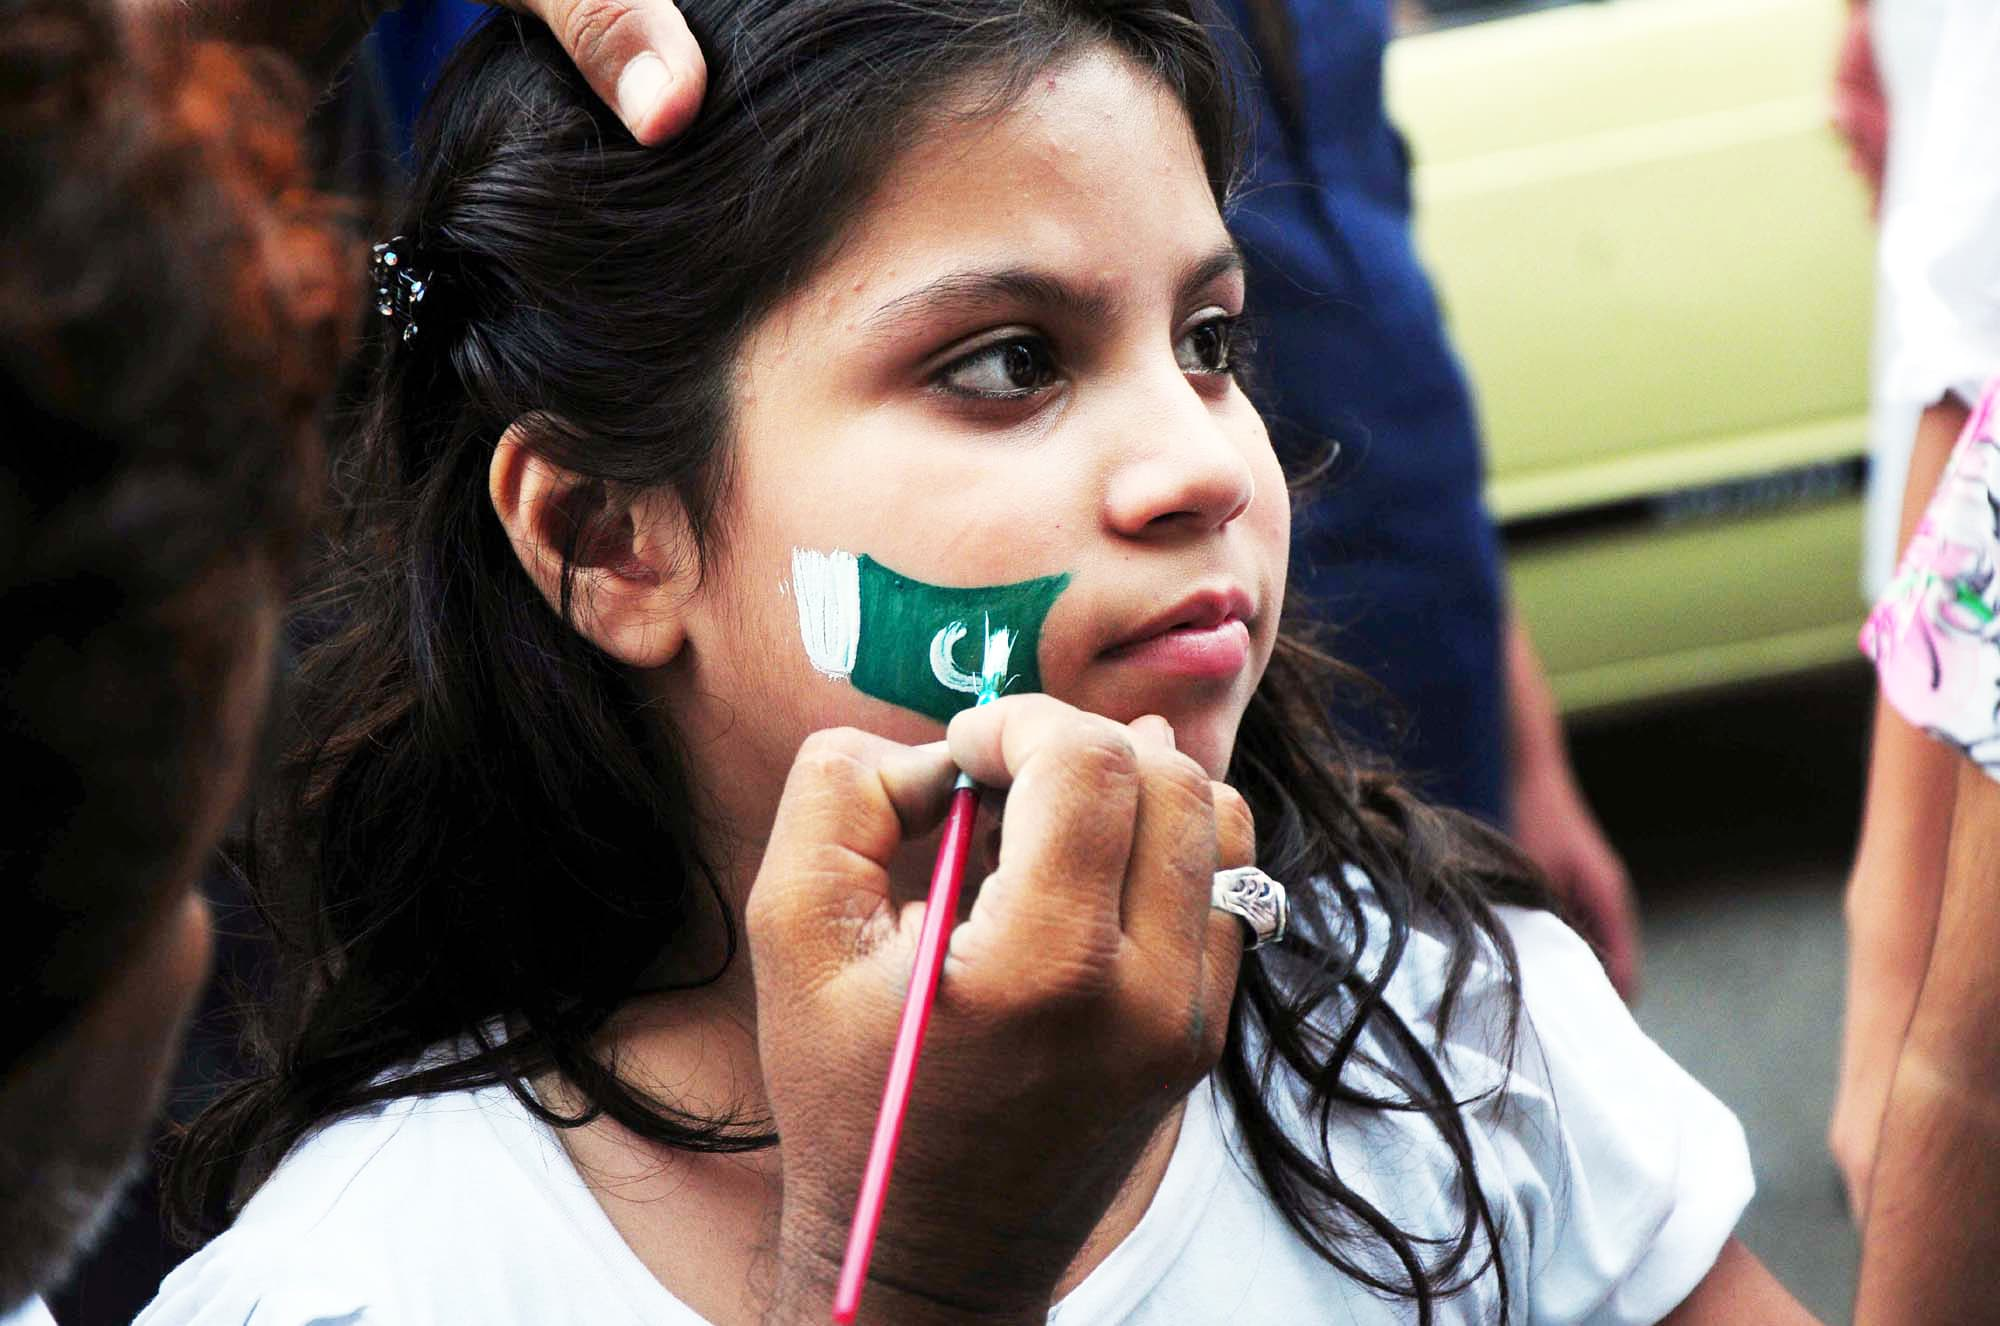 Girl gets the national flag painted on her cheek. — AFP